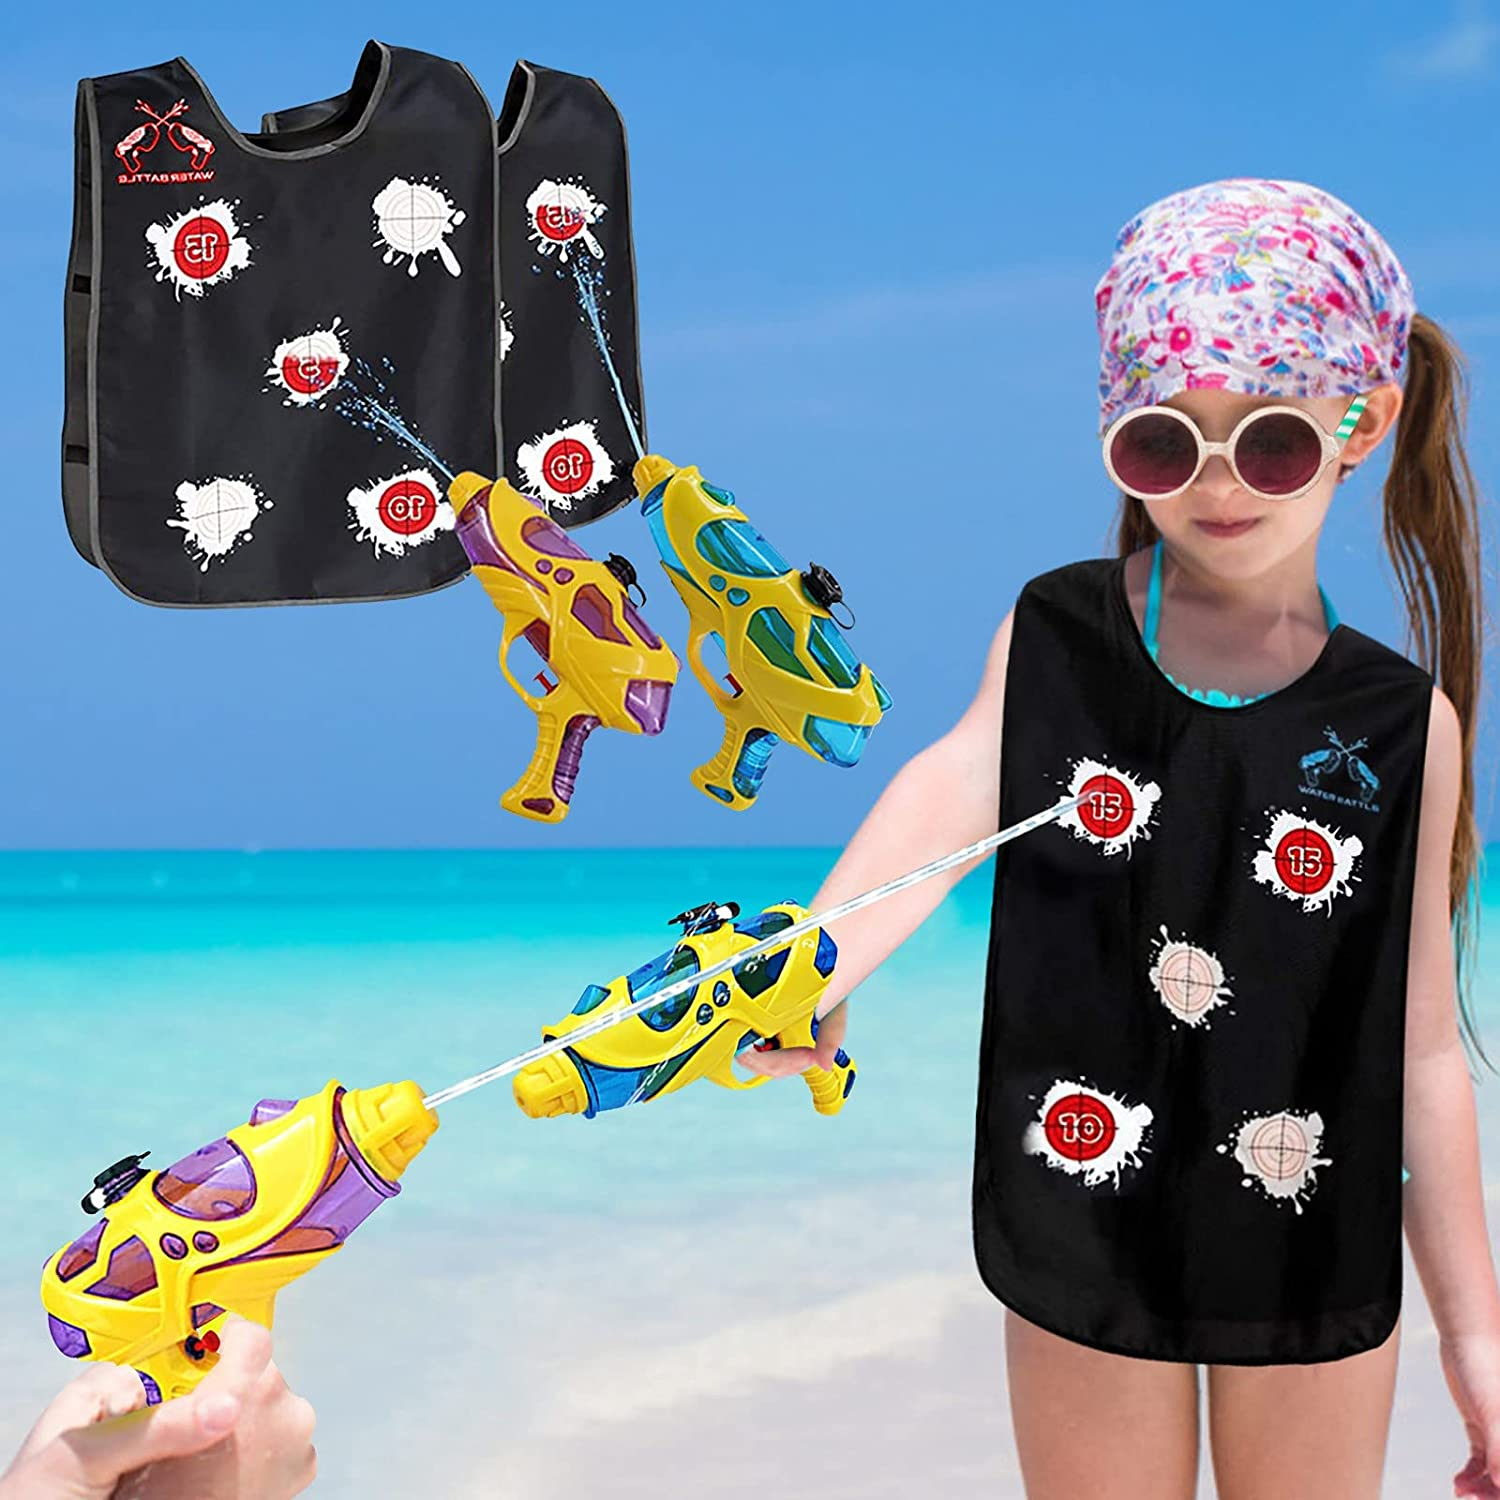 Water Guns supreme Activated Vests 2 Squirt T Pack Super